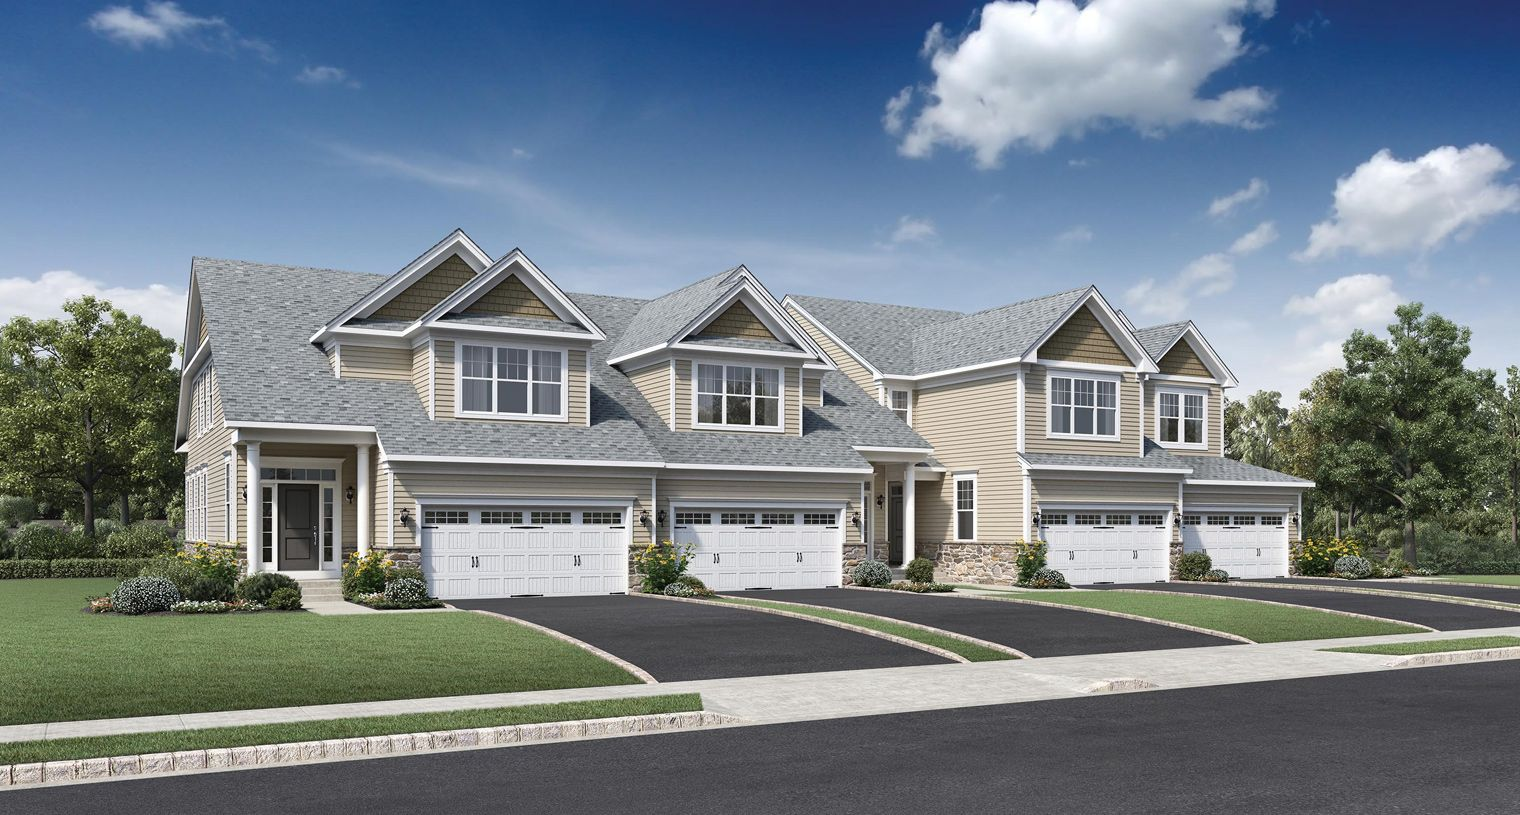 New Construction Homes & Plans in Fairfield, CT | 234 Homes ... on